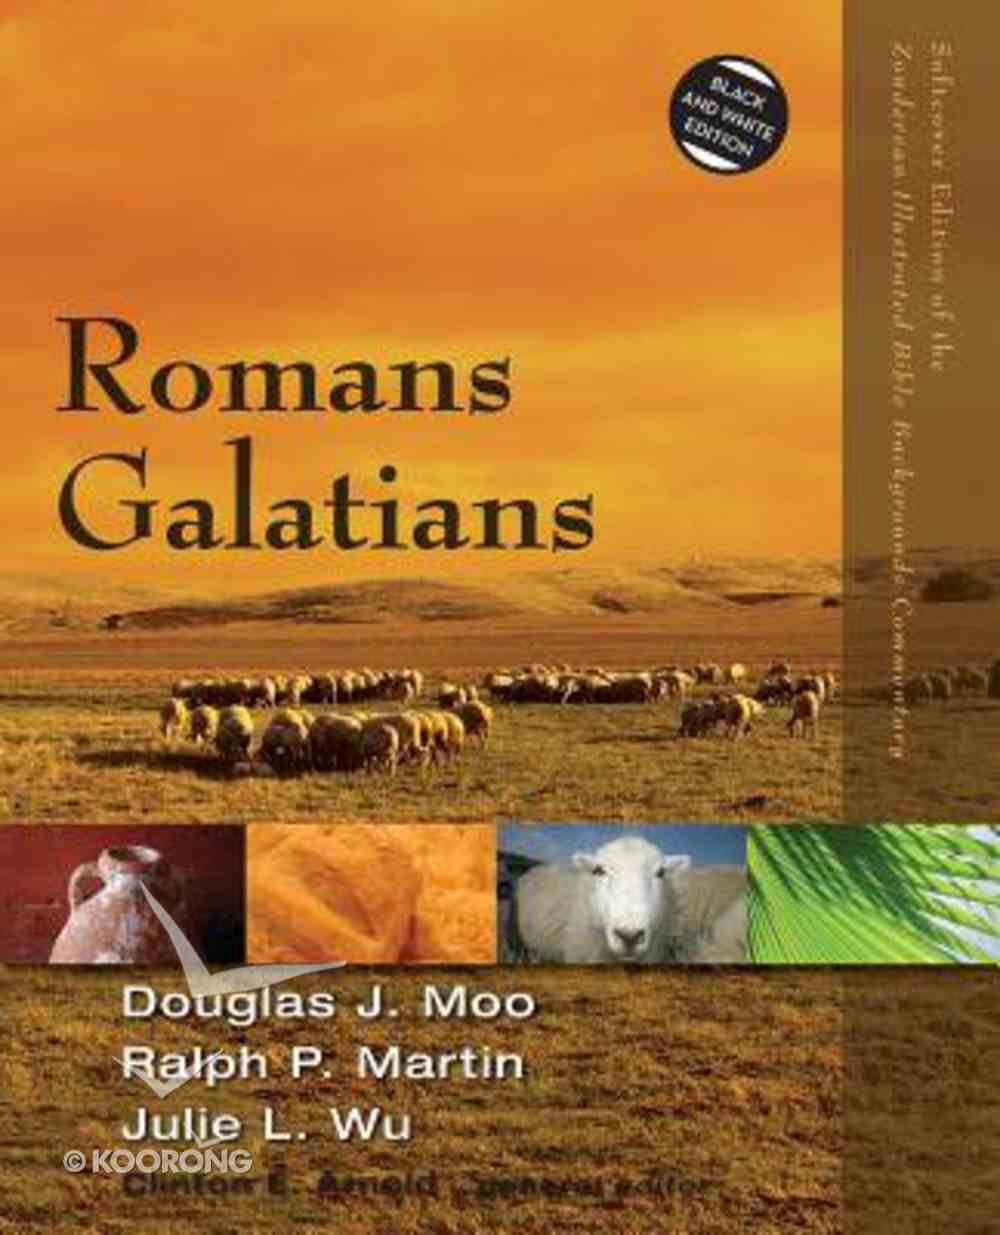 Romans, Galatians (Zondervan Illustrated Bible Backgrounds Commentary Series) Paperback